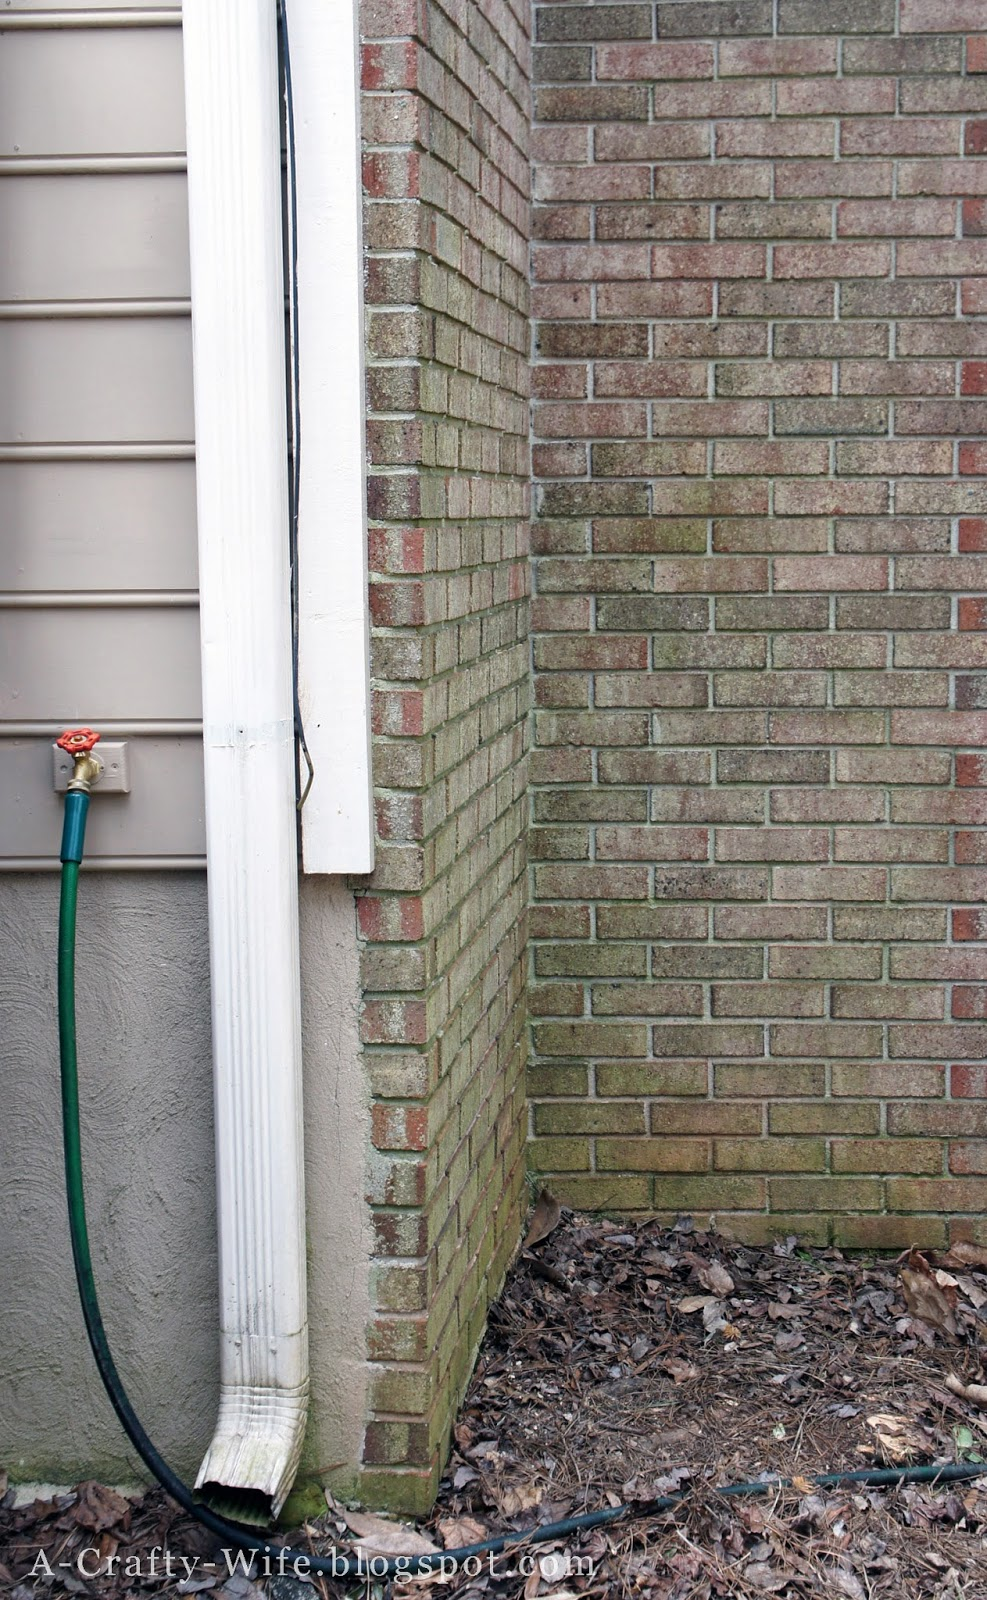 Location for rain barrel near gutter downspout | A Crafty Wife